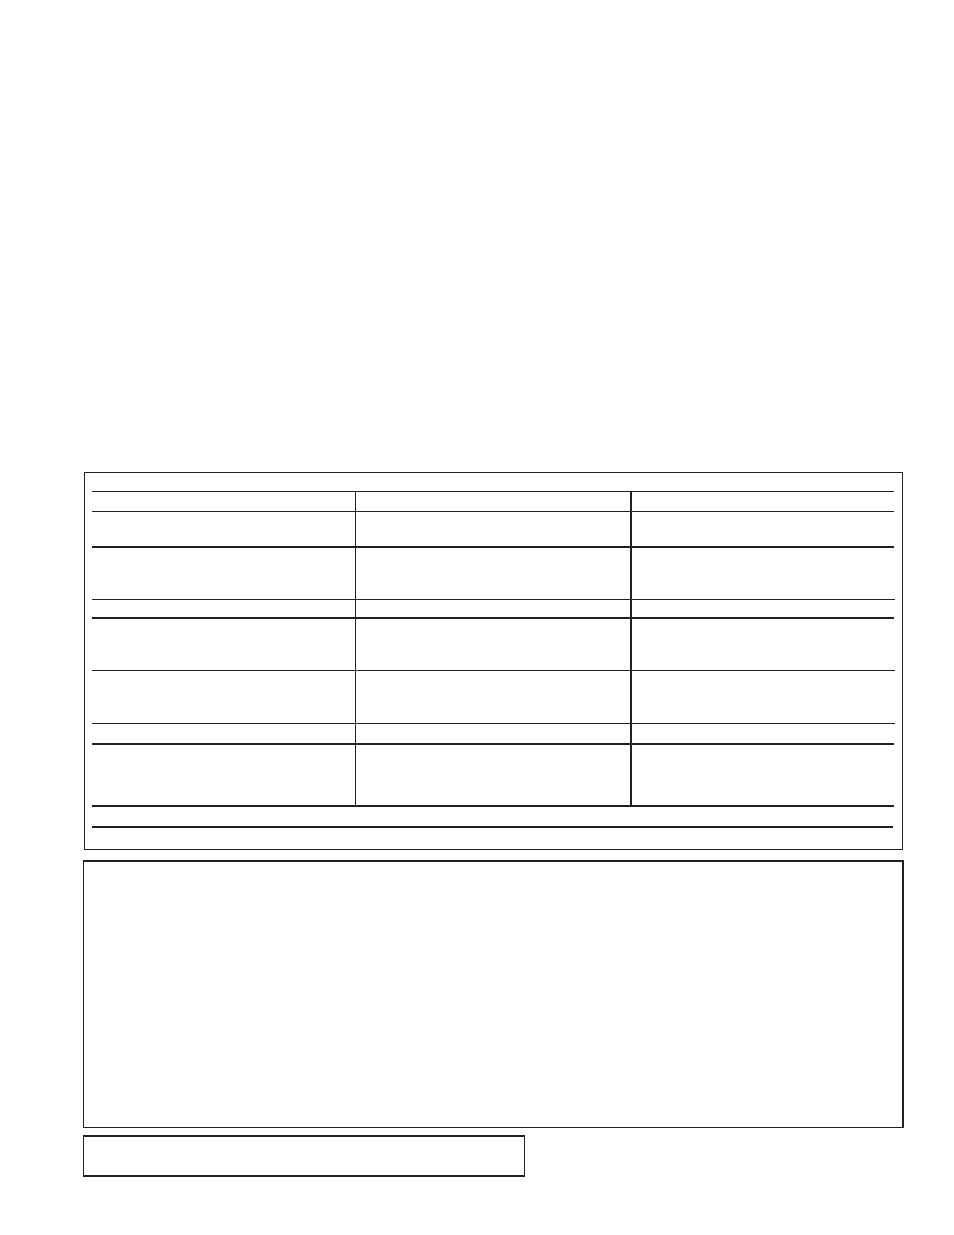 medium resolution of limited warranty guide general limitations of smokeco alarms first alert sco7 user manual page 7 7